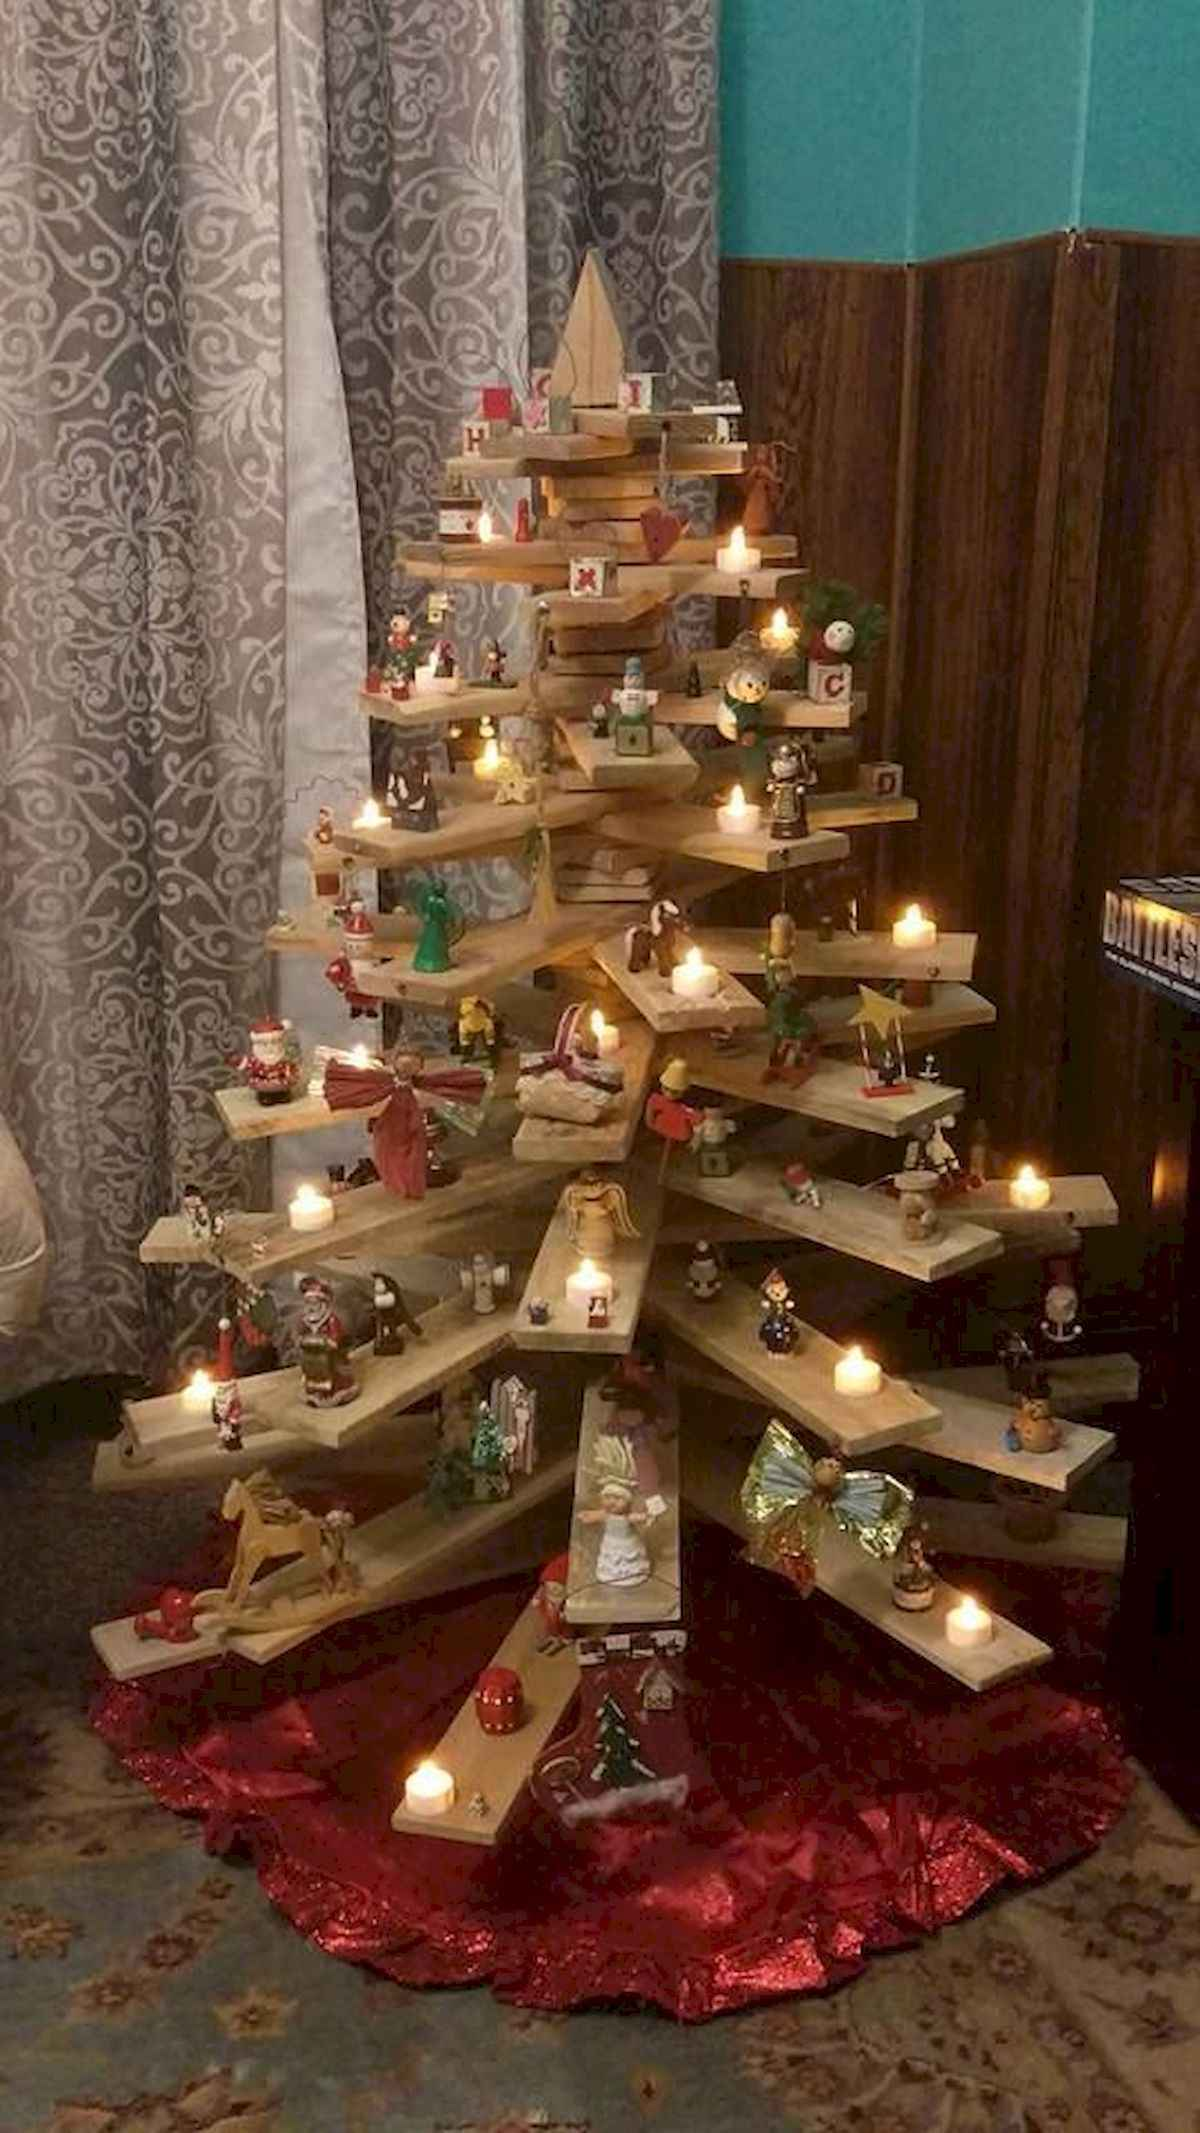 30 rustic and vintage christmas tree ideas decorations (16)